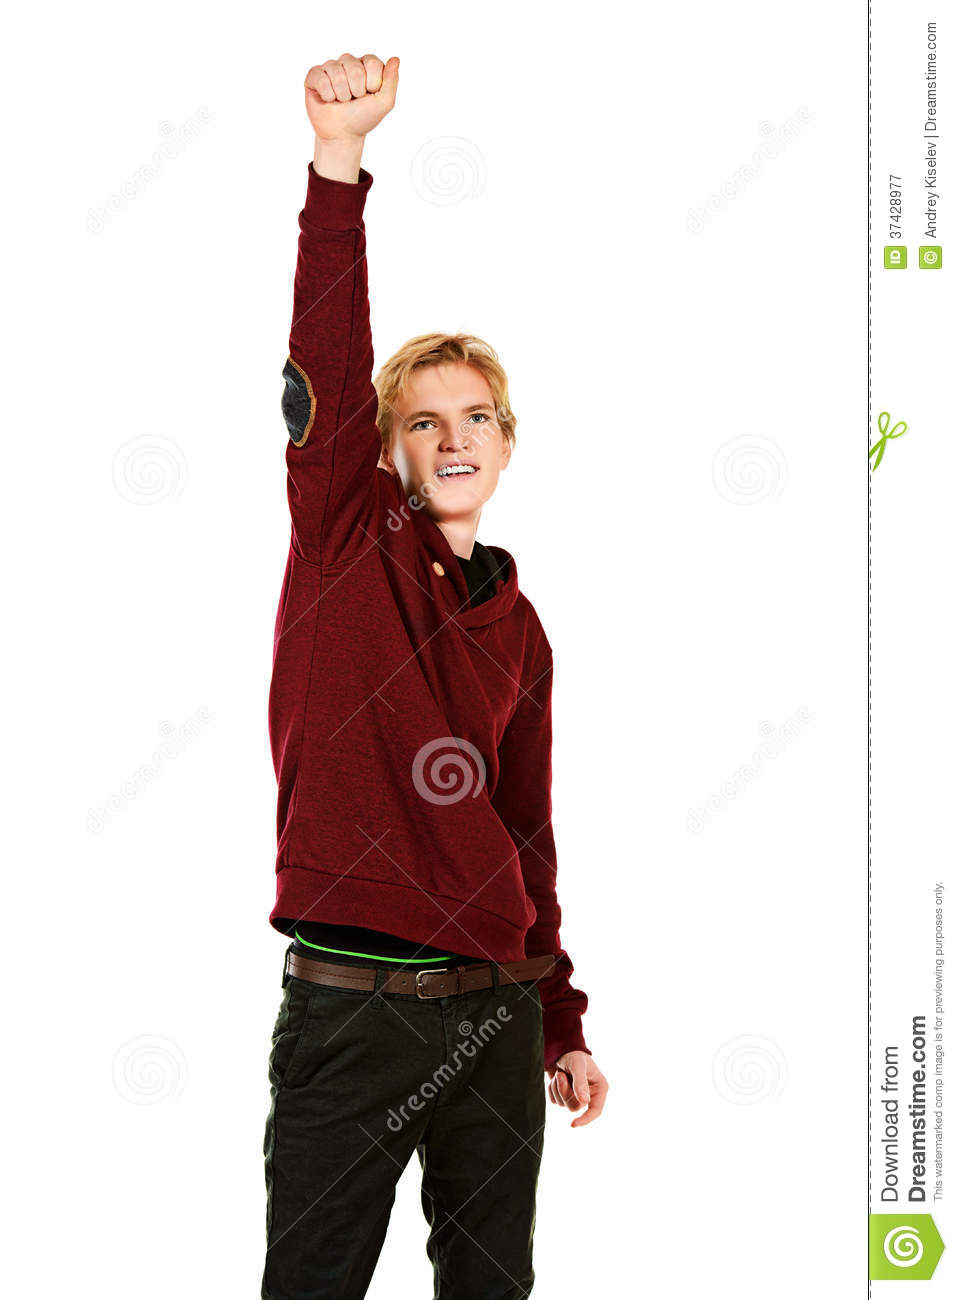 Winner Pose Royalty Free Stock Photography - Image: 37428977